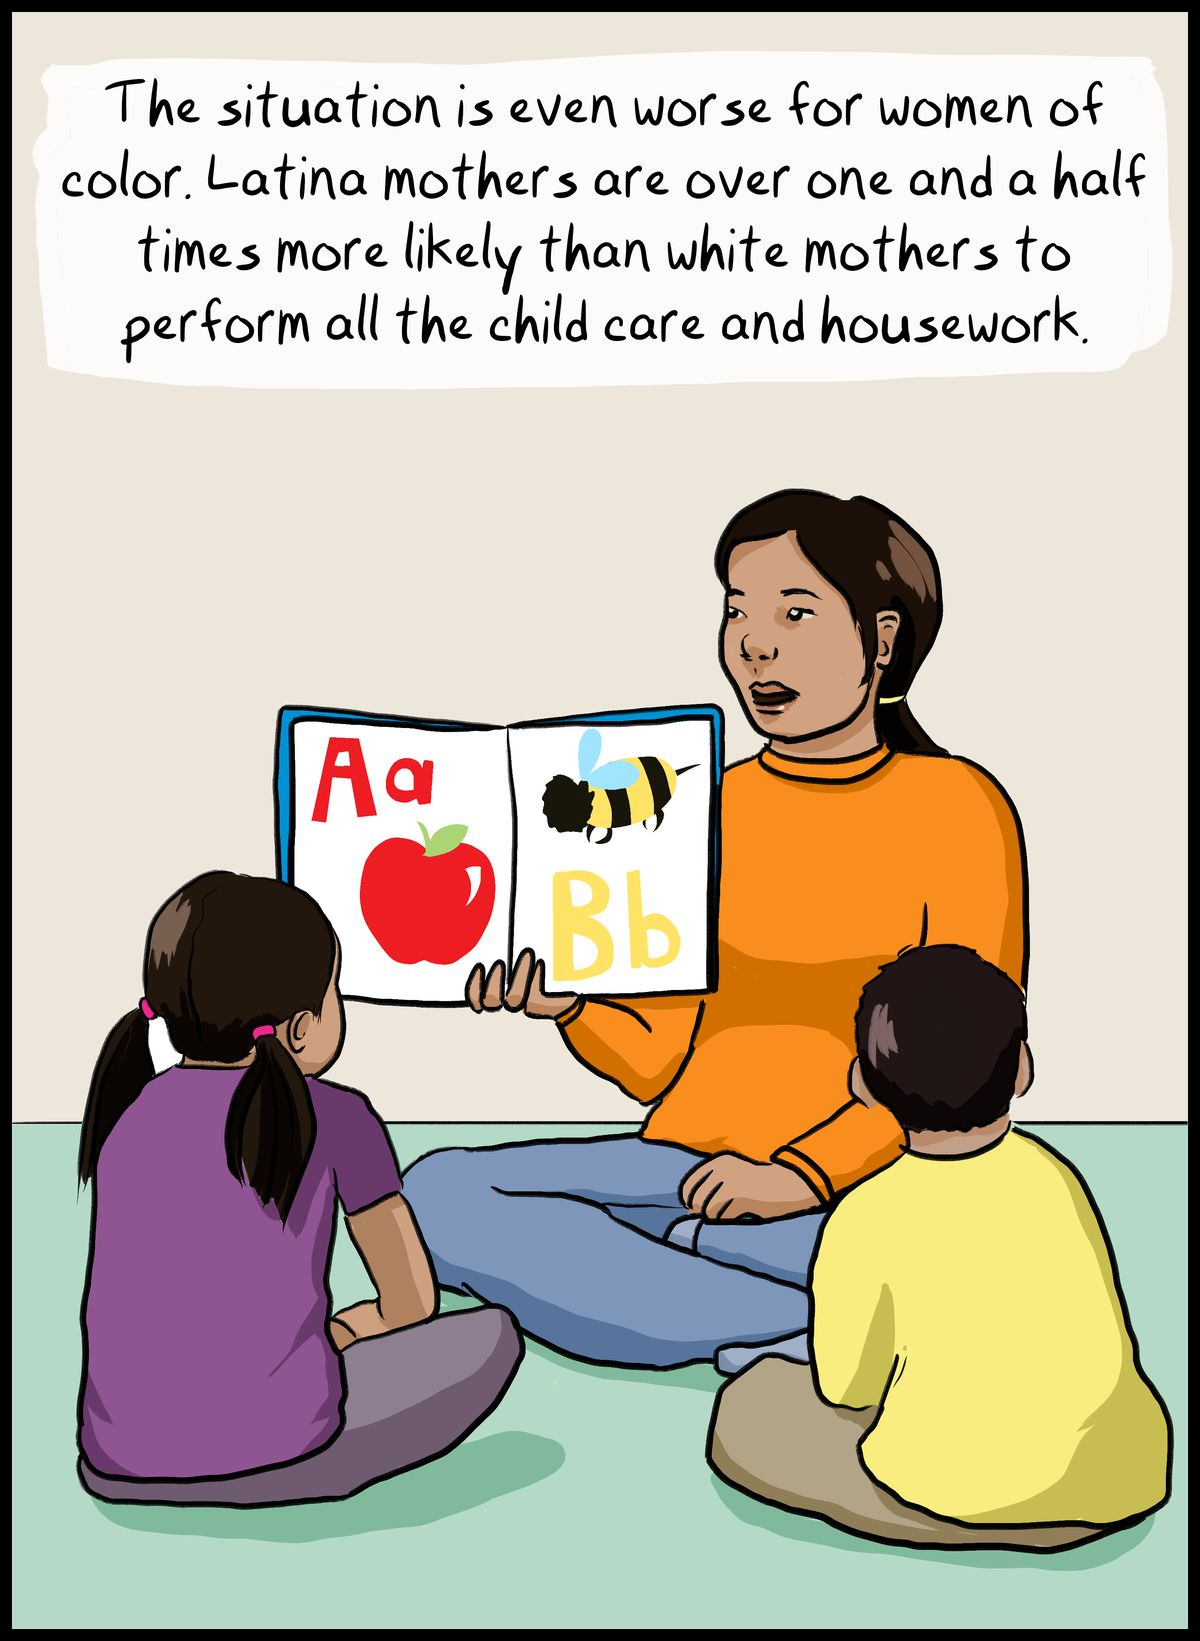 The situation is even worse for women of color. Latina mothers are over one and a half times more likely than white mothers to perform all the child care and housework.